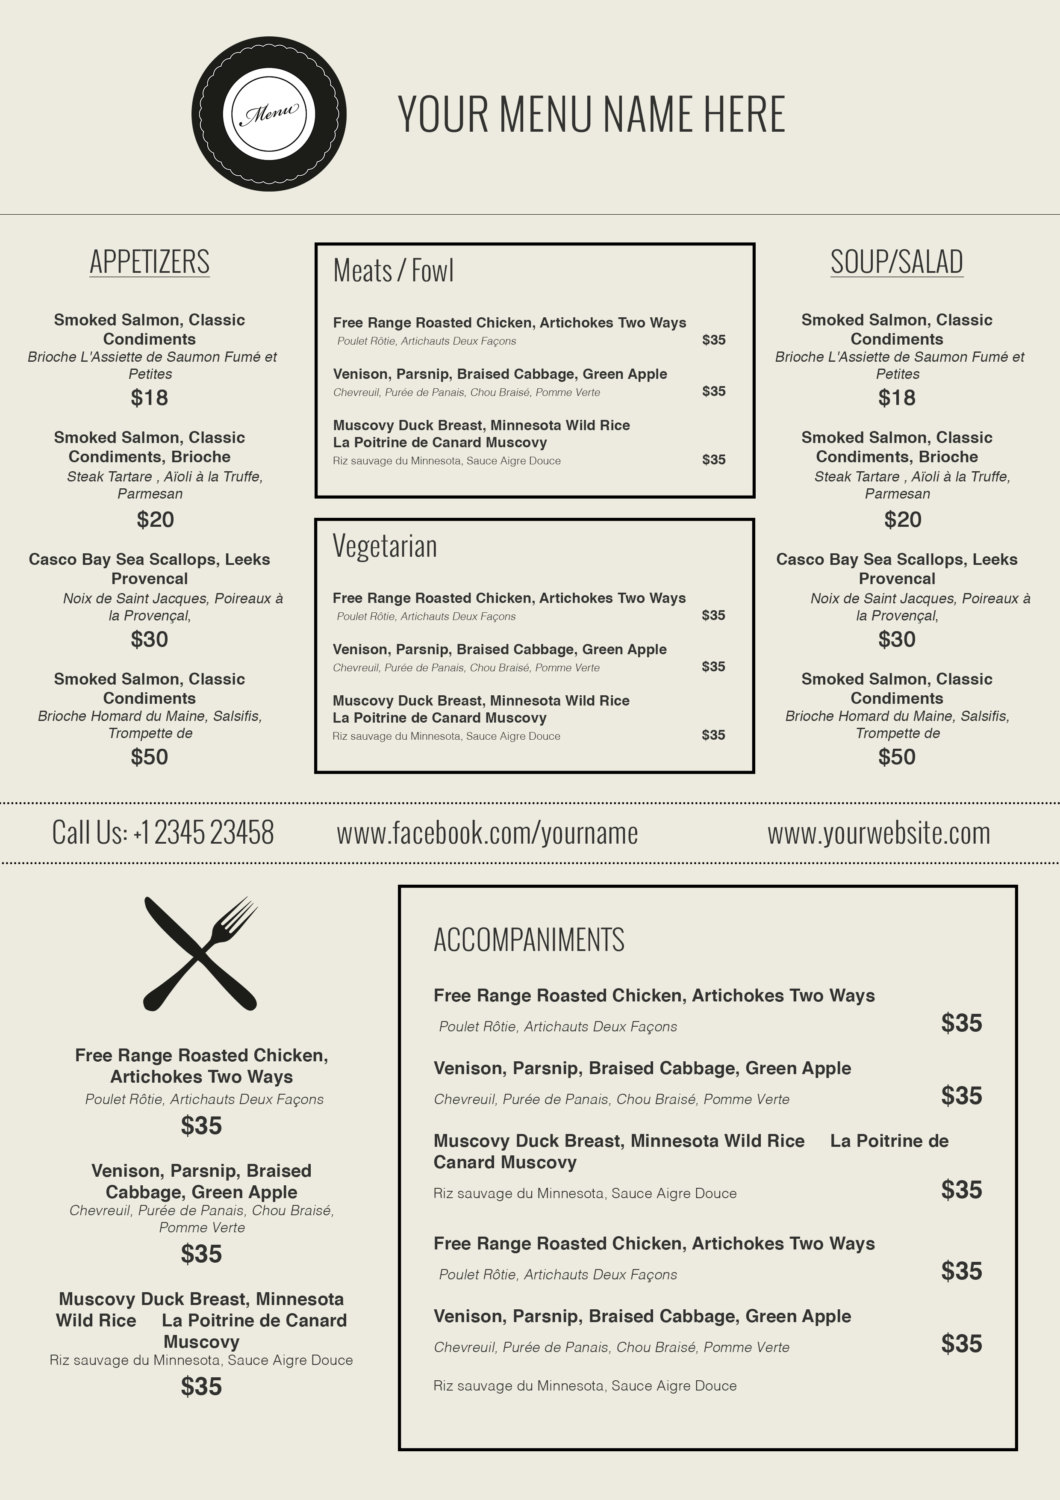 Charming Microsoft Office Restaurant Menu Templates Intended For Free Restaurant Menu Template Word